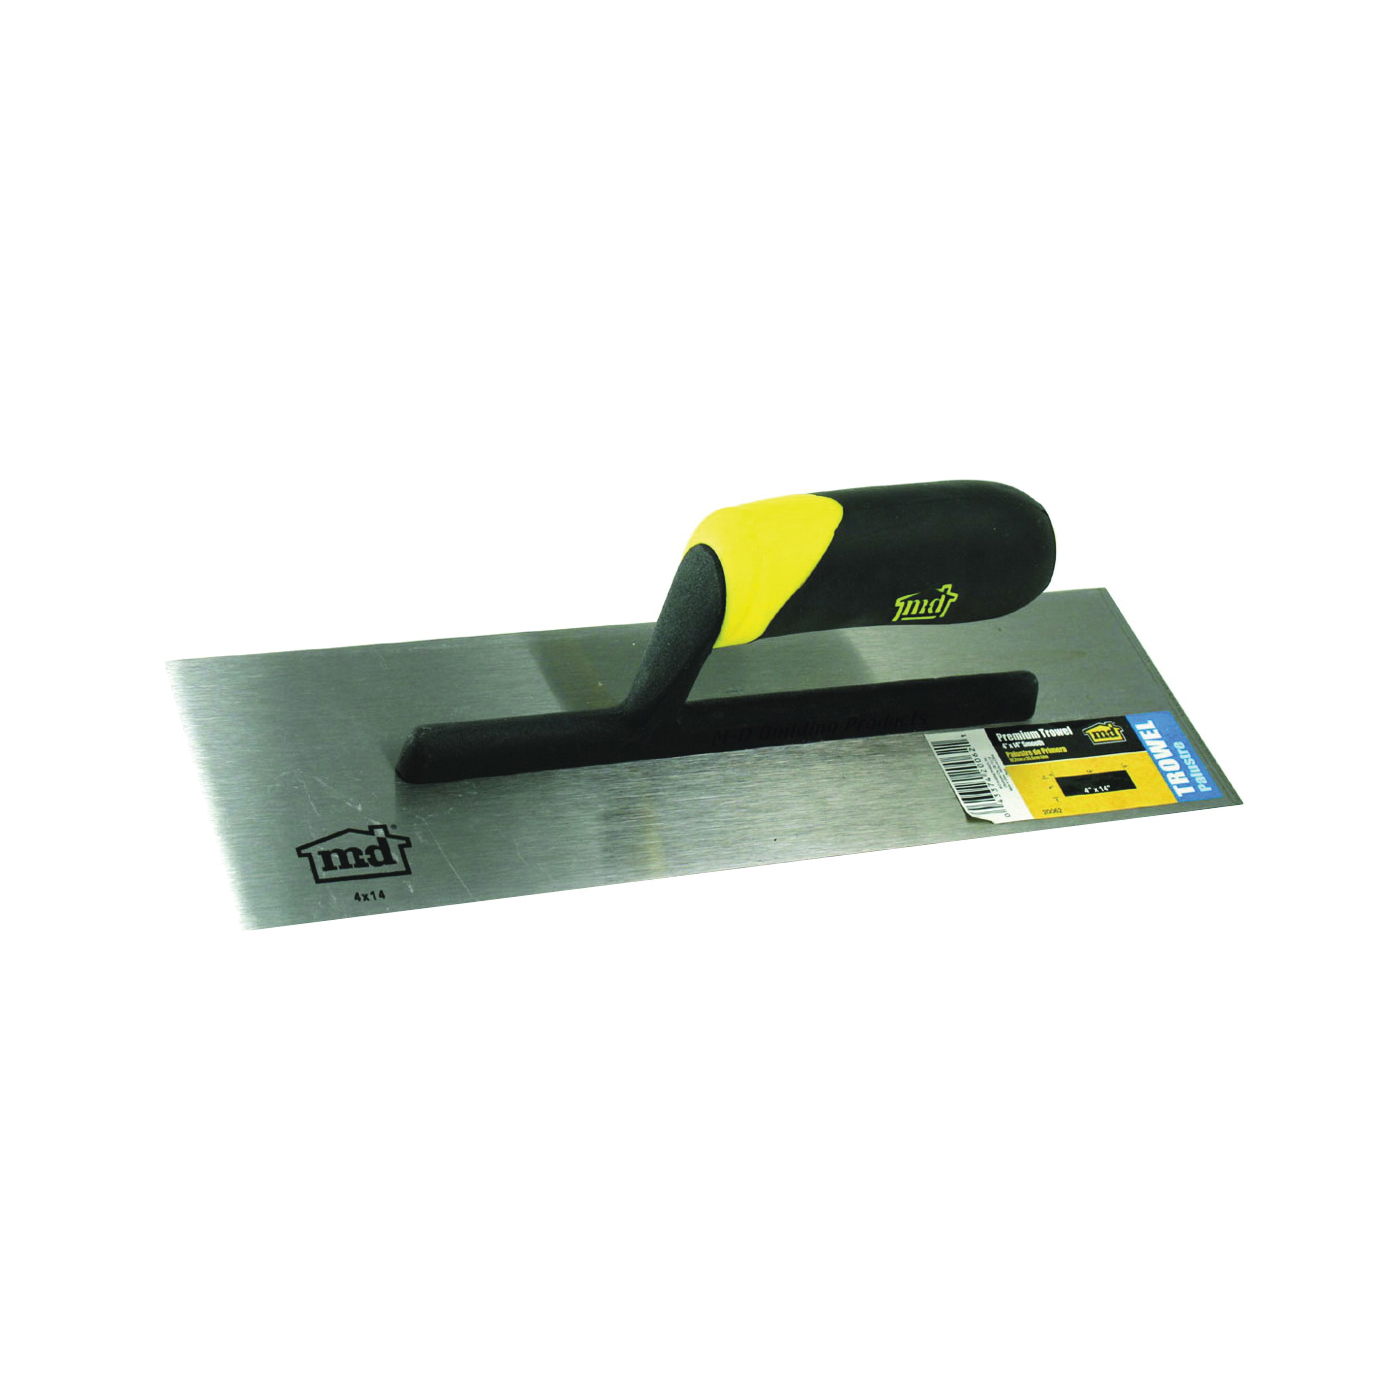 Picture of M-D 20062 Finishing Trowel, 14 in L Blade, 4 in W Blade, Steel Blade, Comfort Grip Handle, Thermoplastic Handle